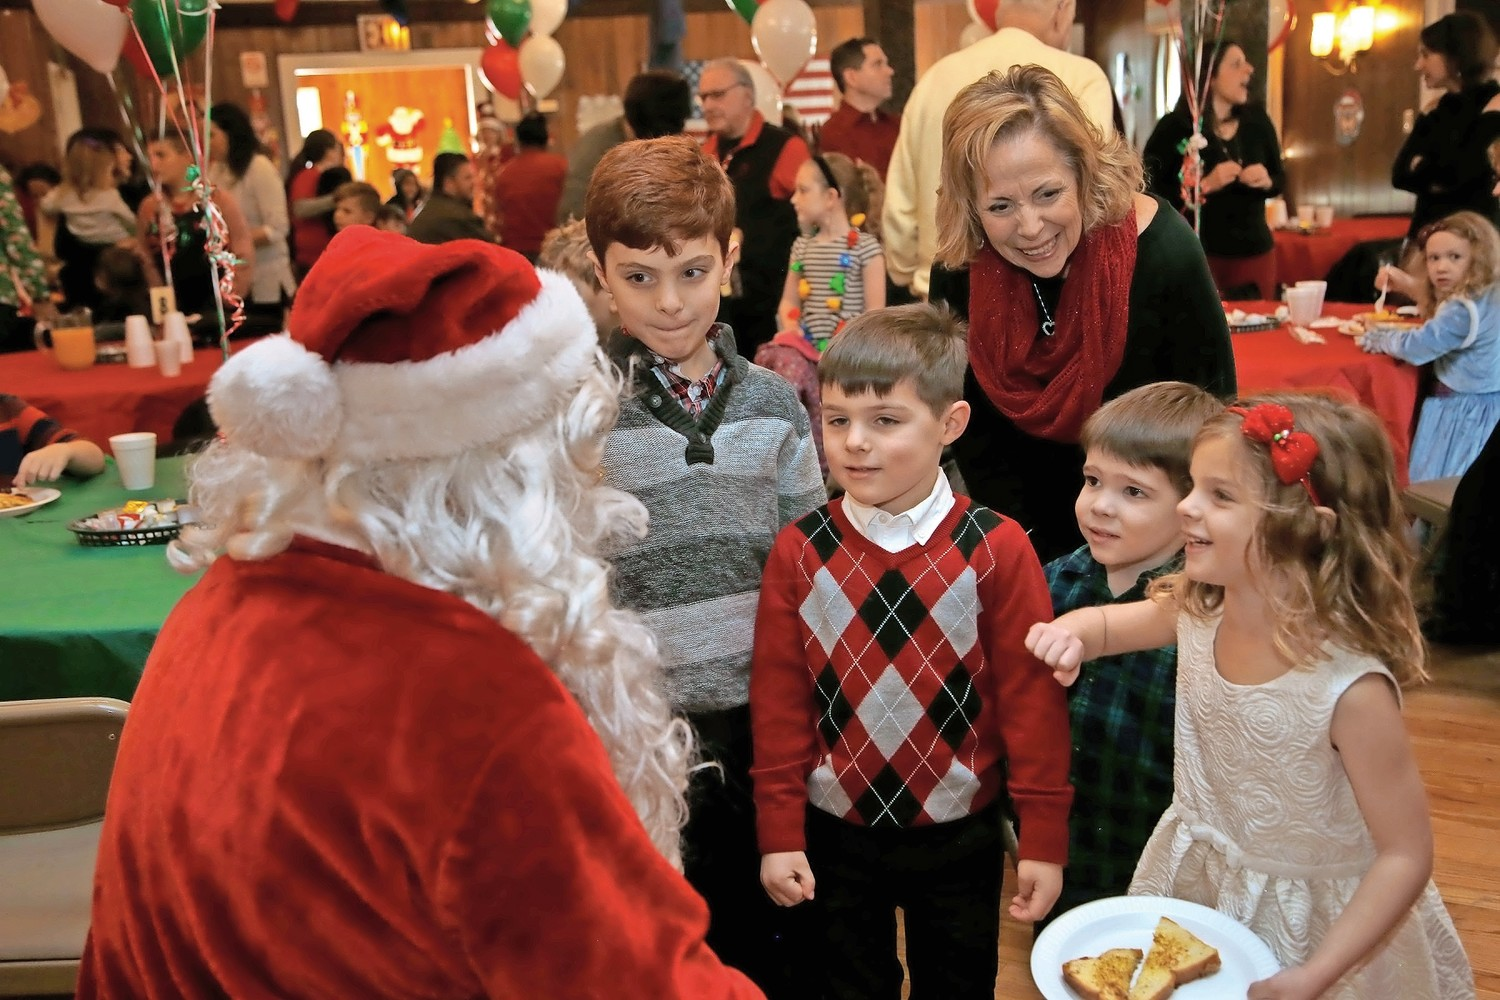 Ryan DelGiorno, 8, left, his brother Patrick, 5, Thomas Risolo, 4, and Lily DelGiorno, 5, got to have breakfast with Santa Claus on Dec. 2.